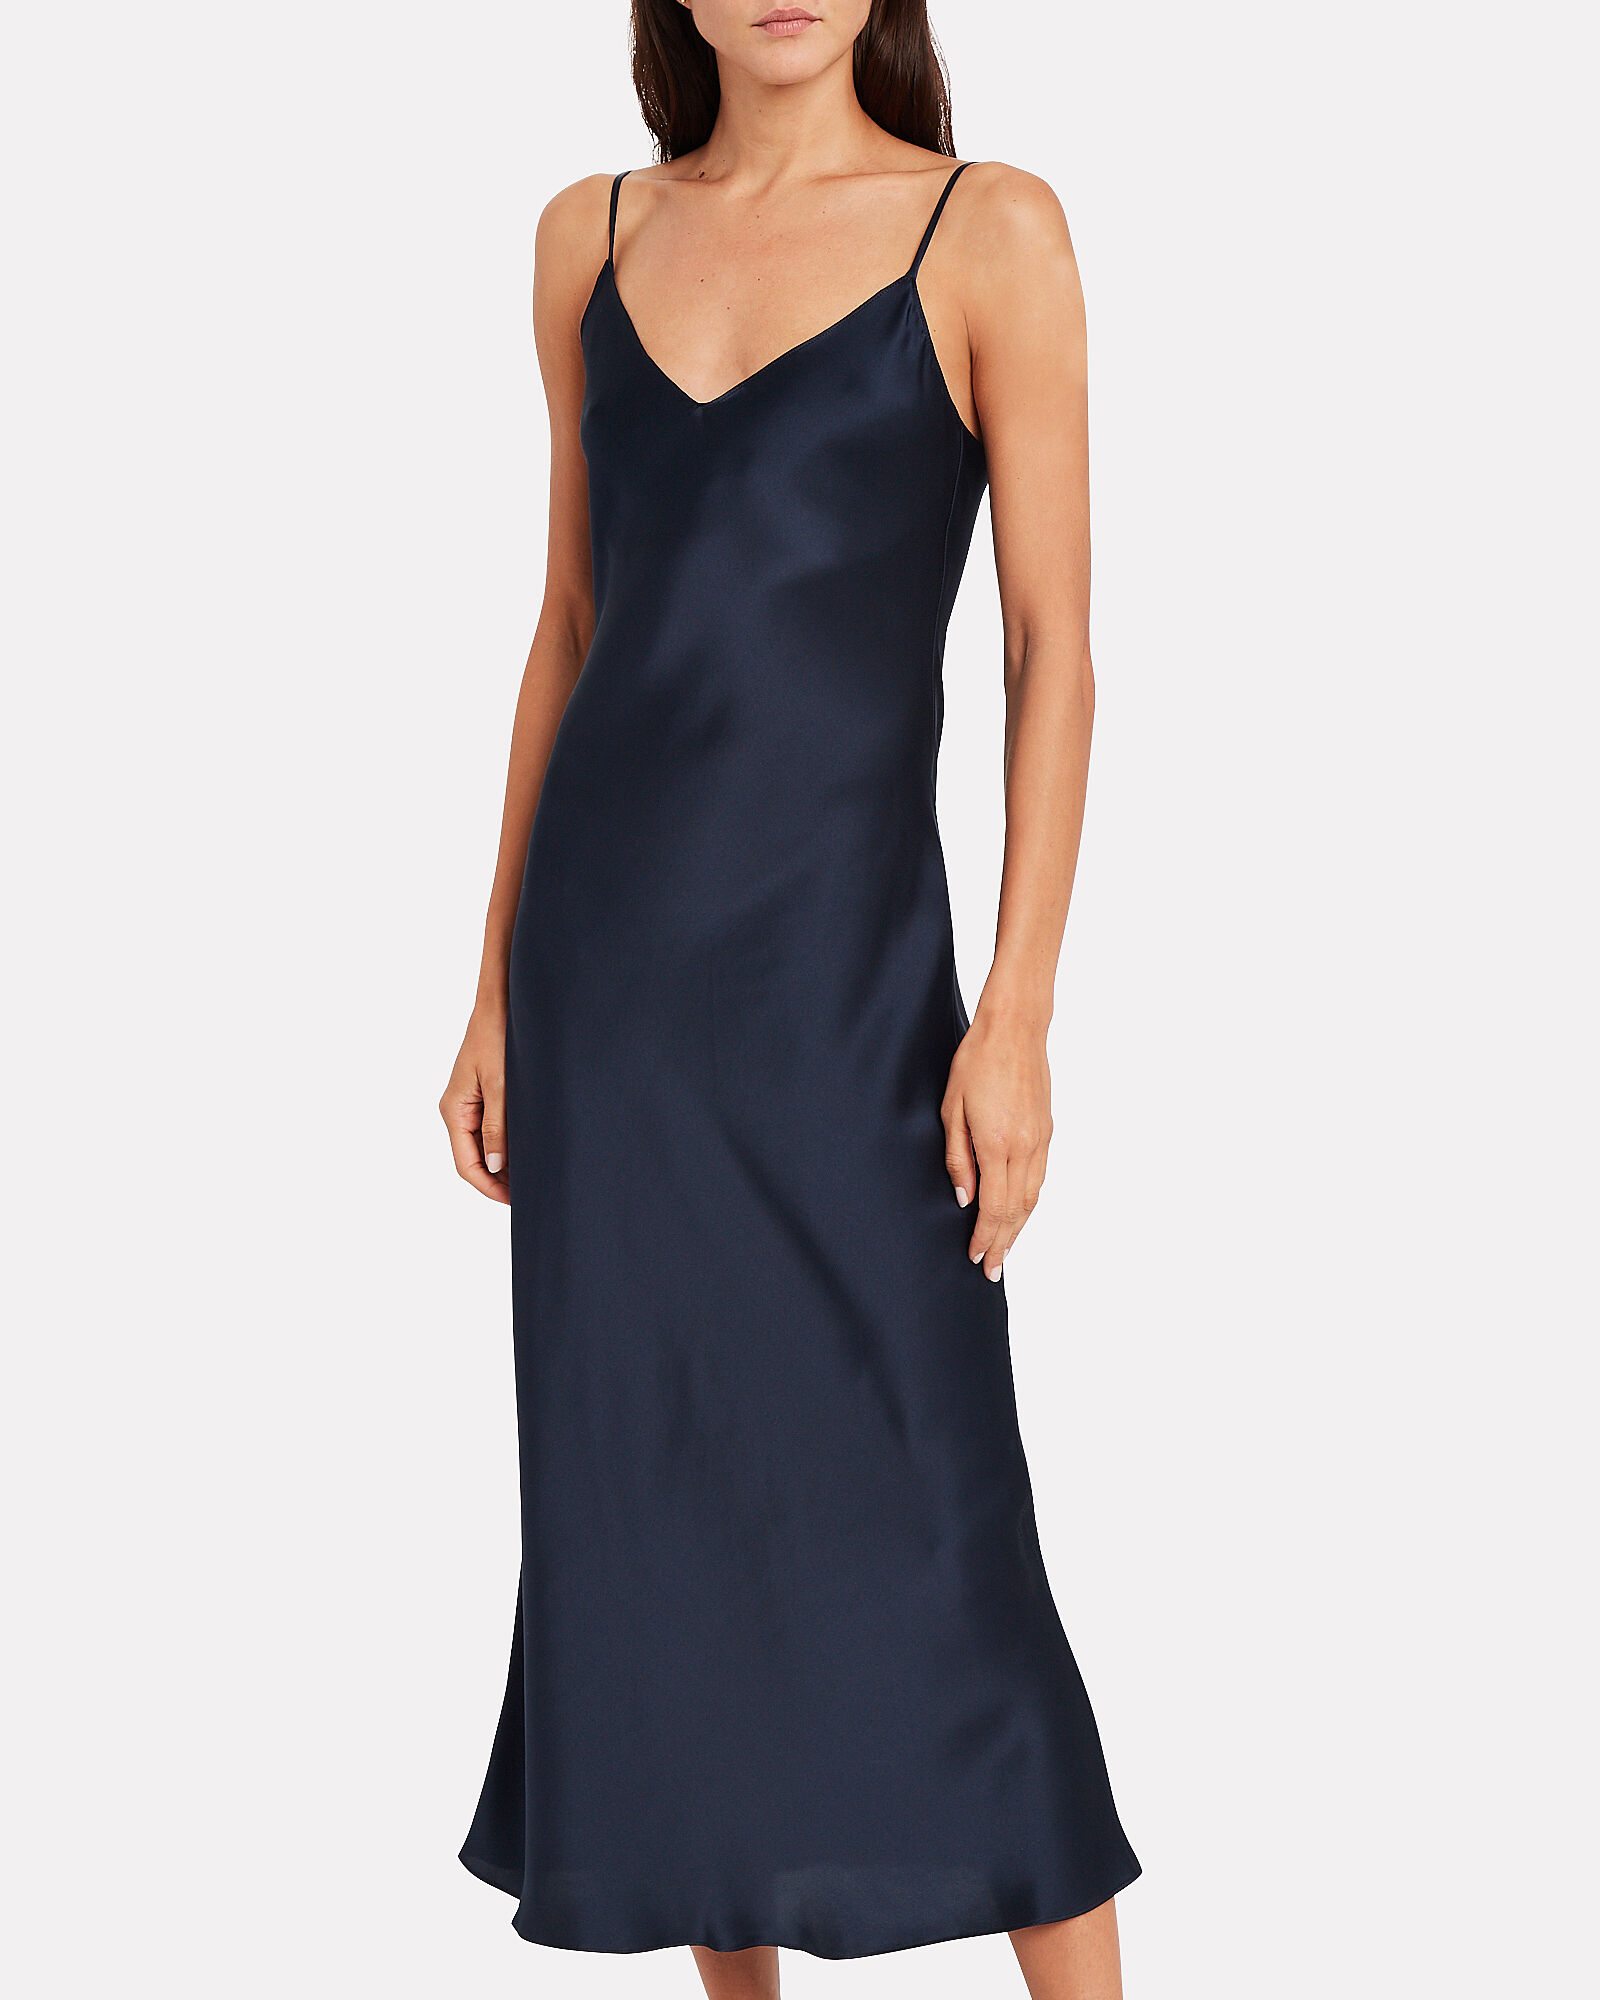 Taylor Silk Slip Dress, NAVY, hi-res